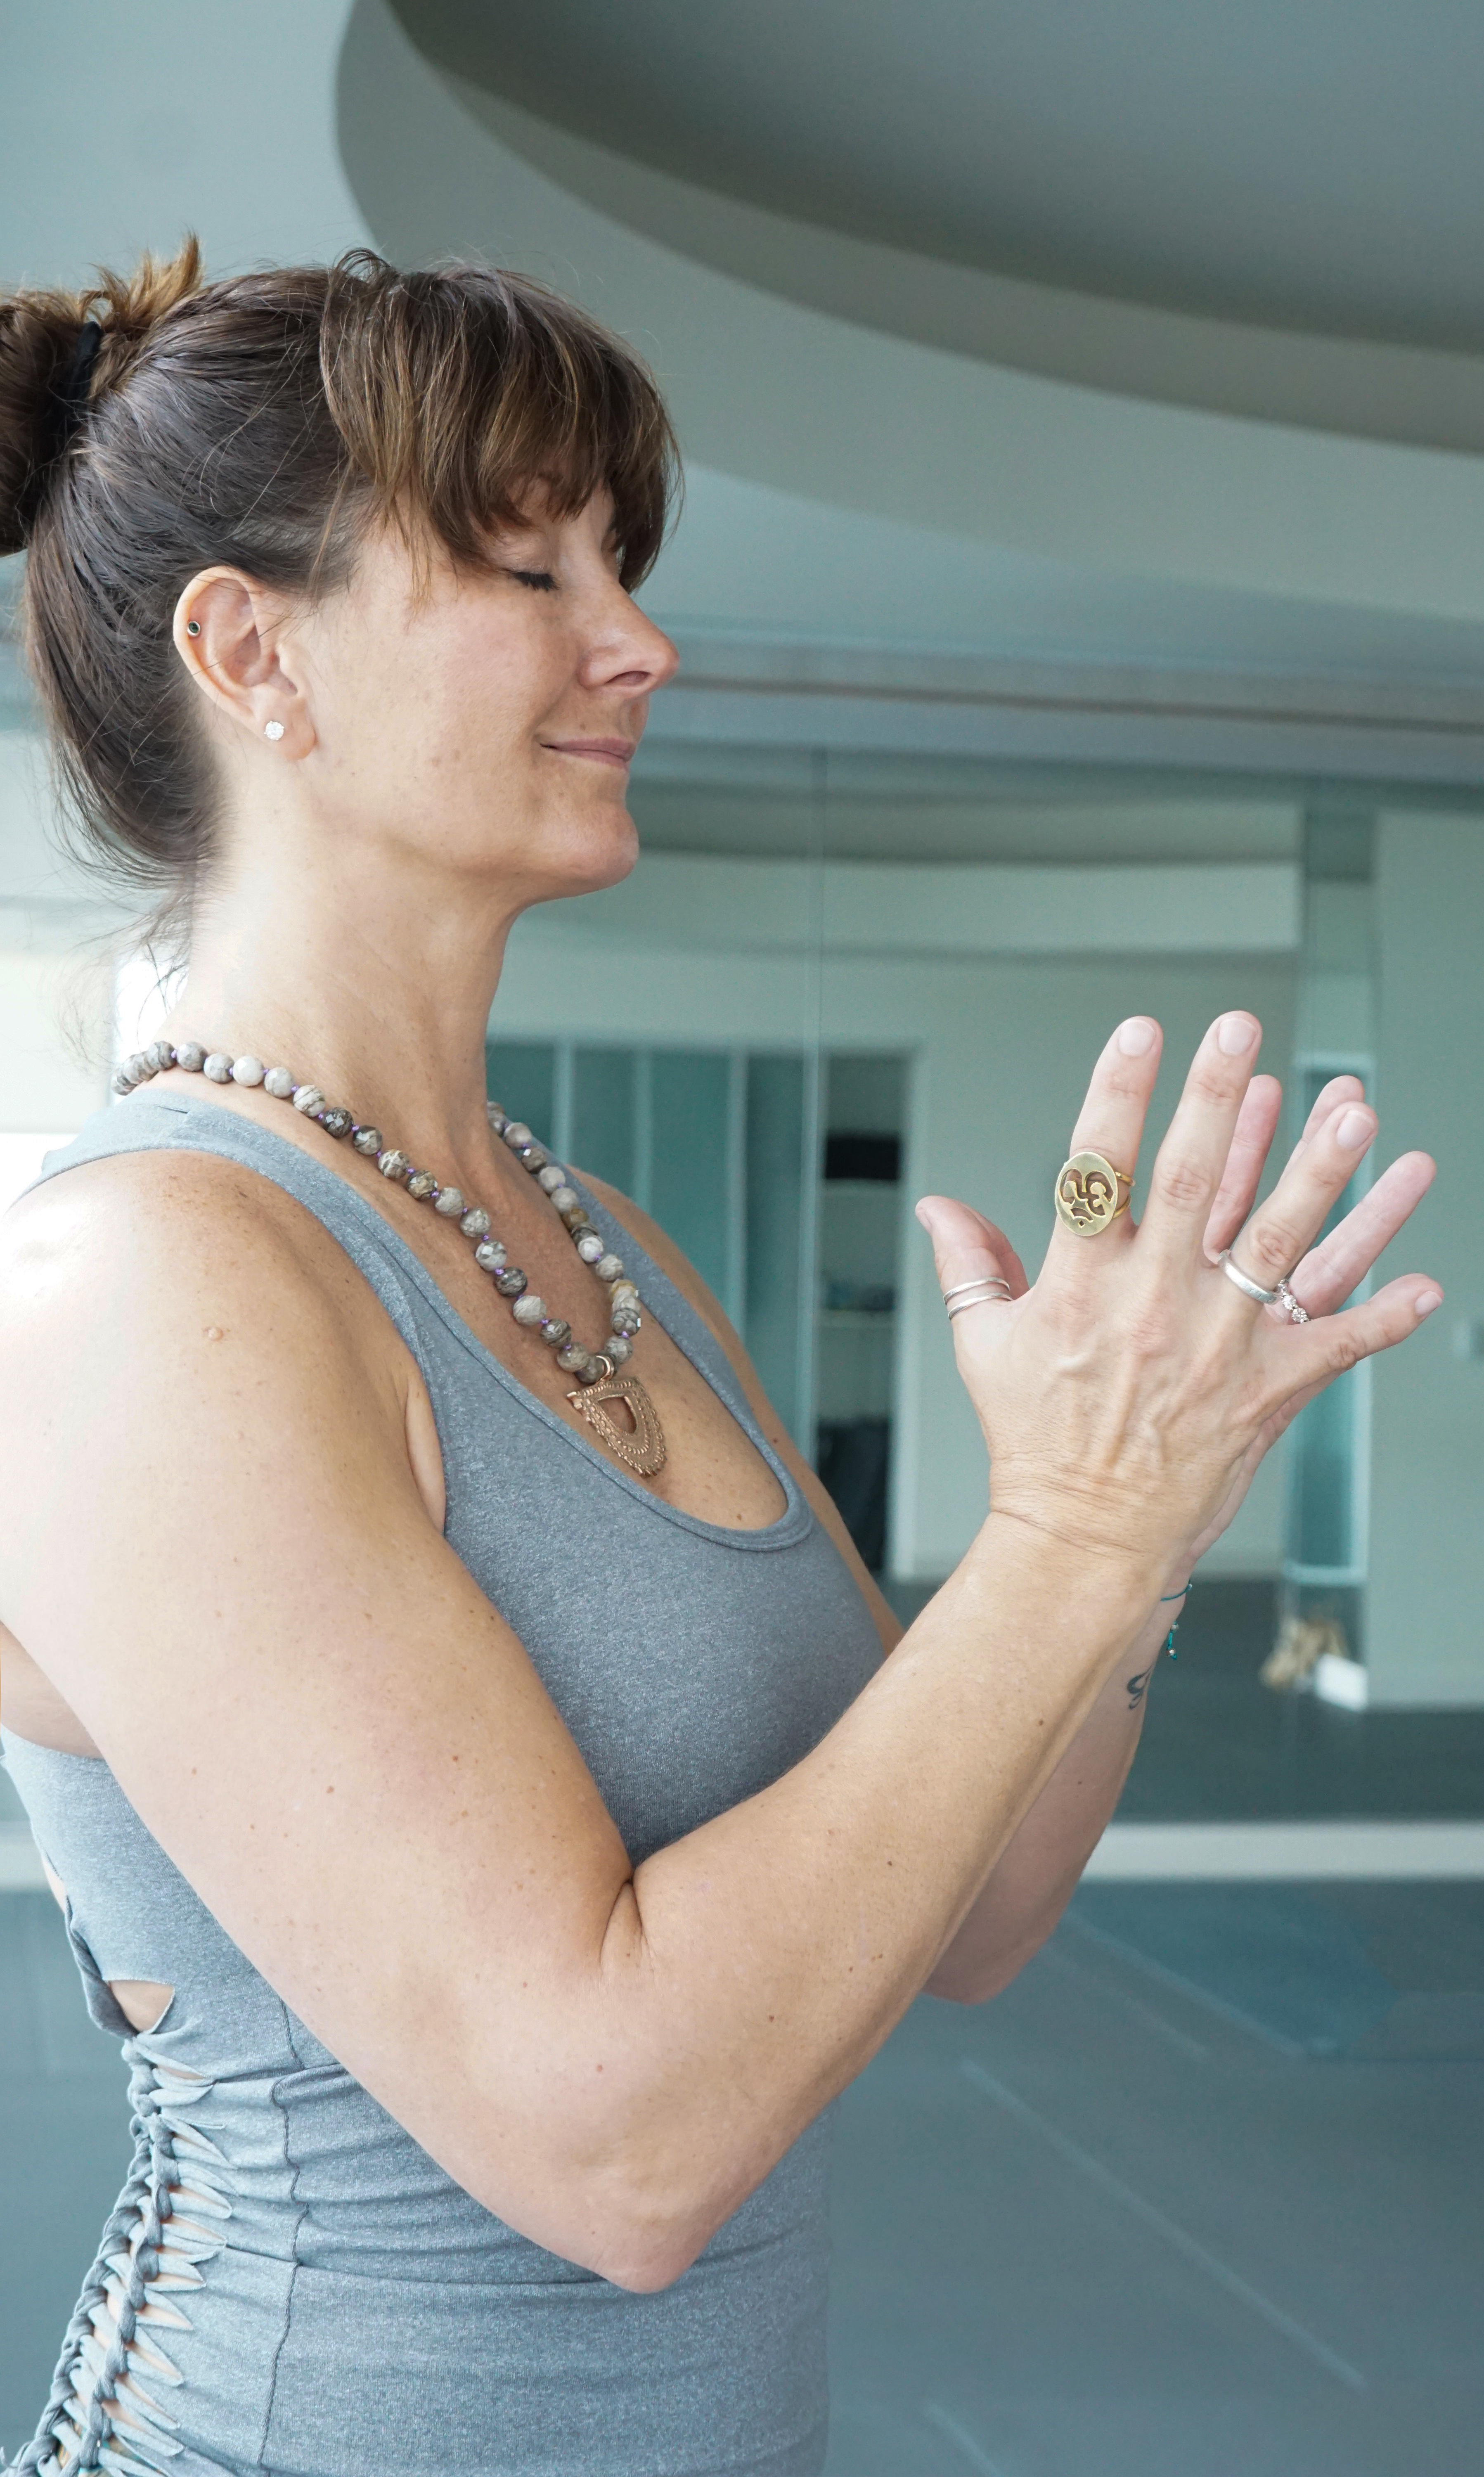 Why do we Namaste with Prayer Hands?